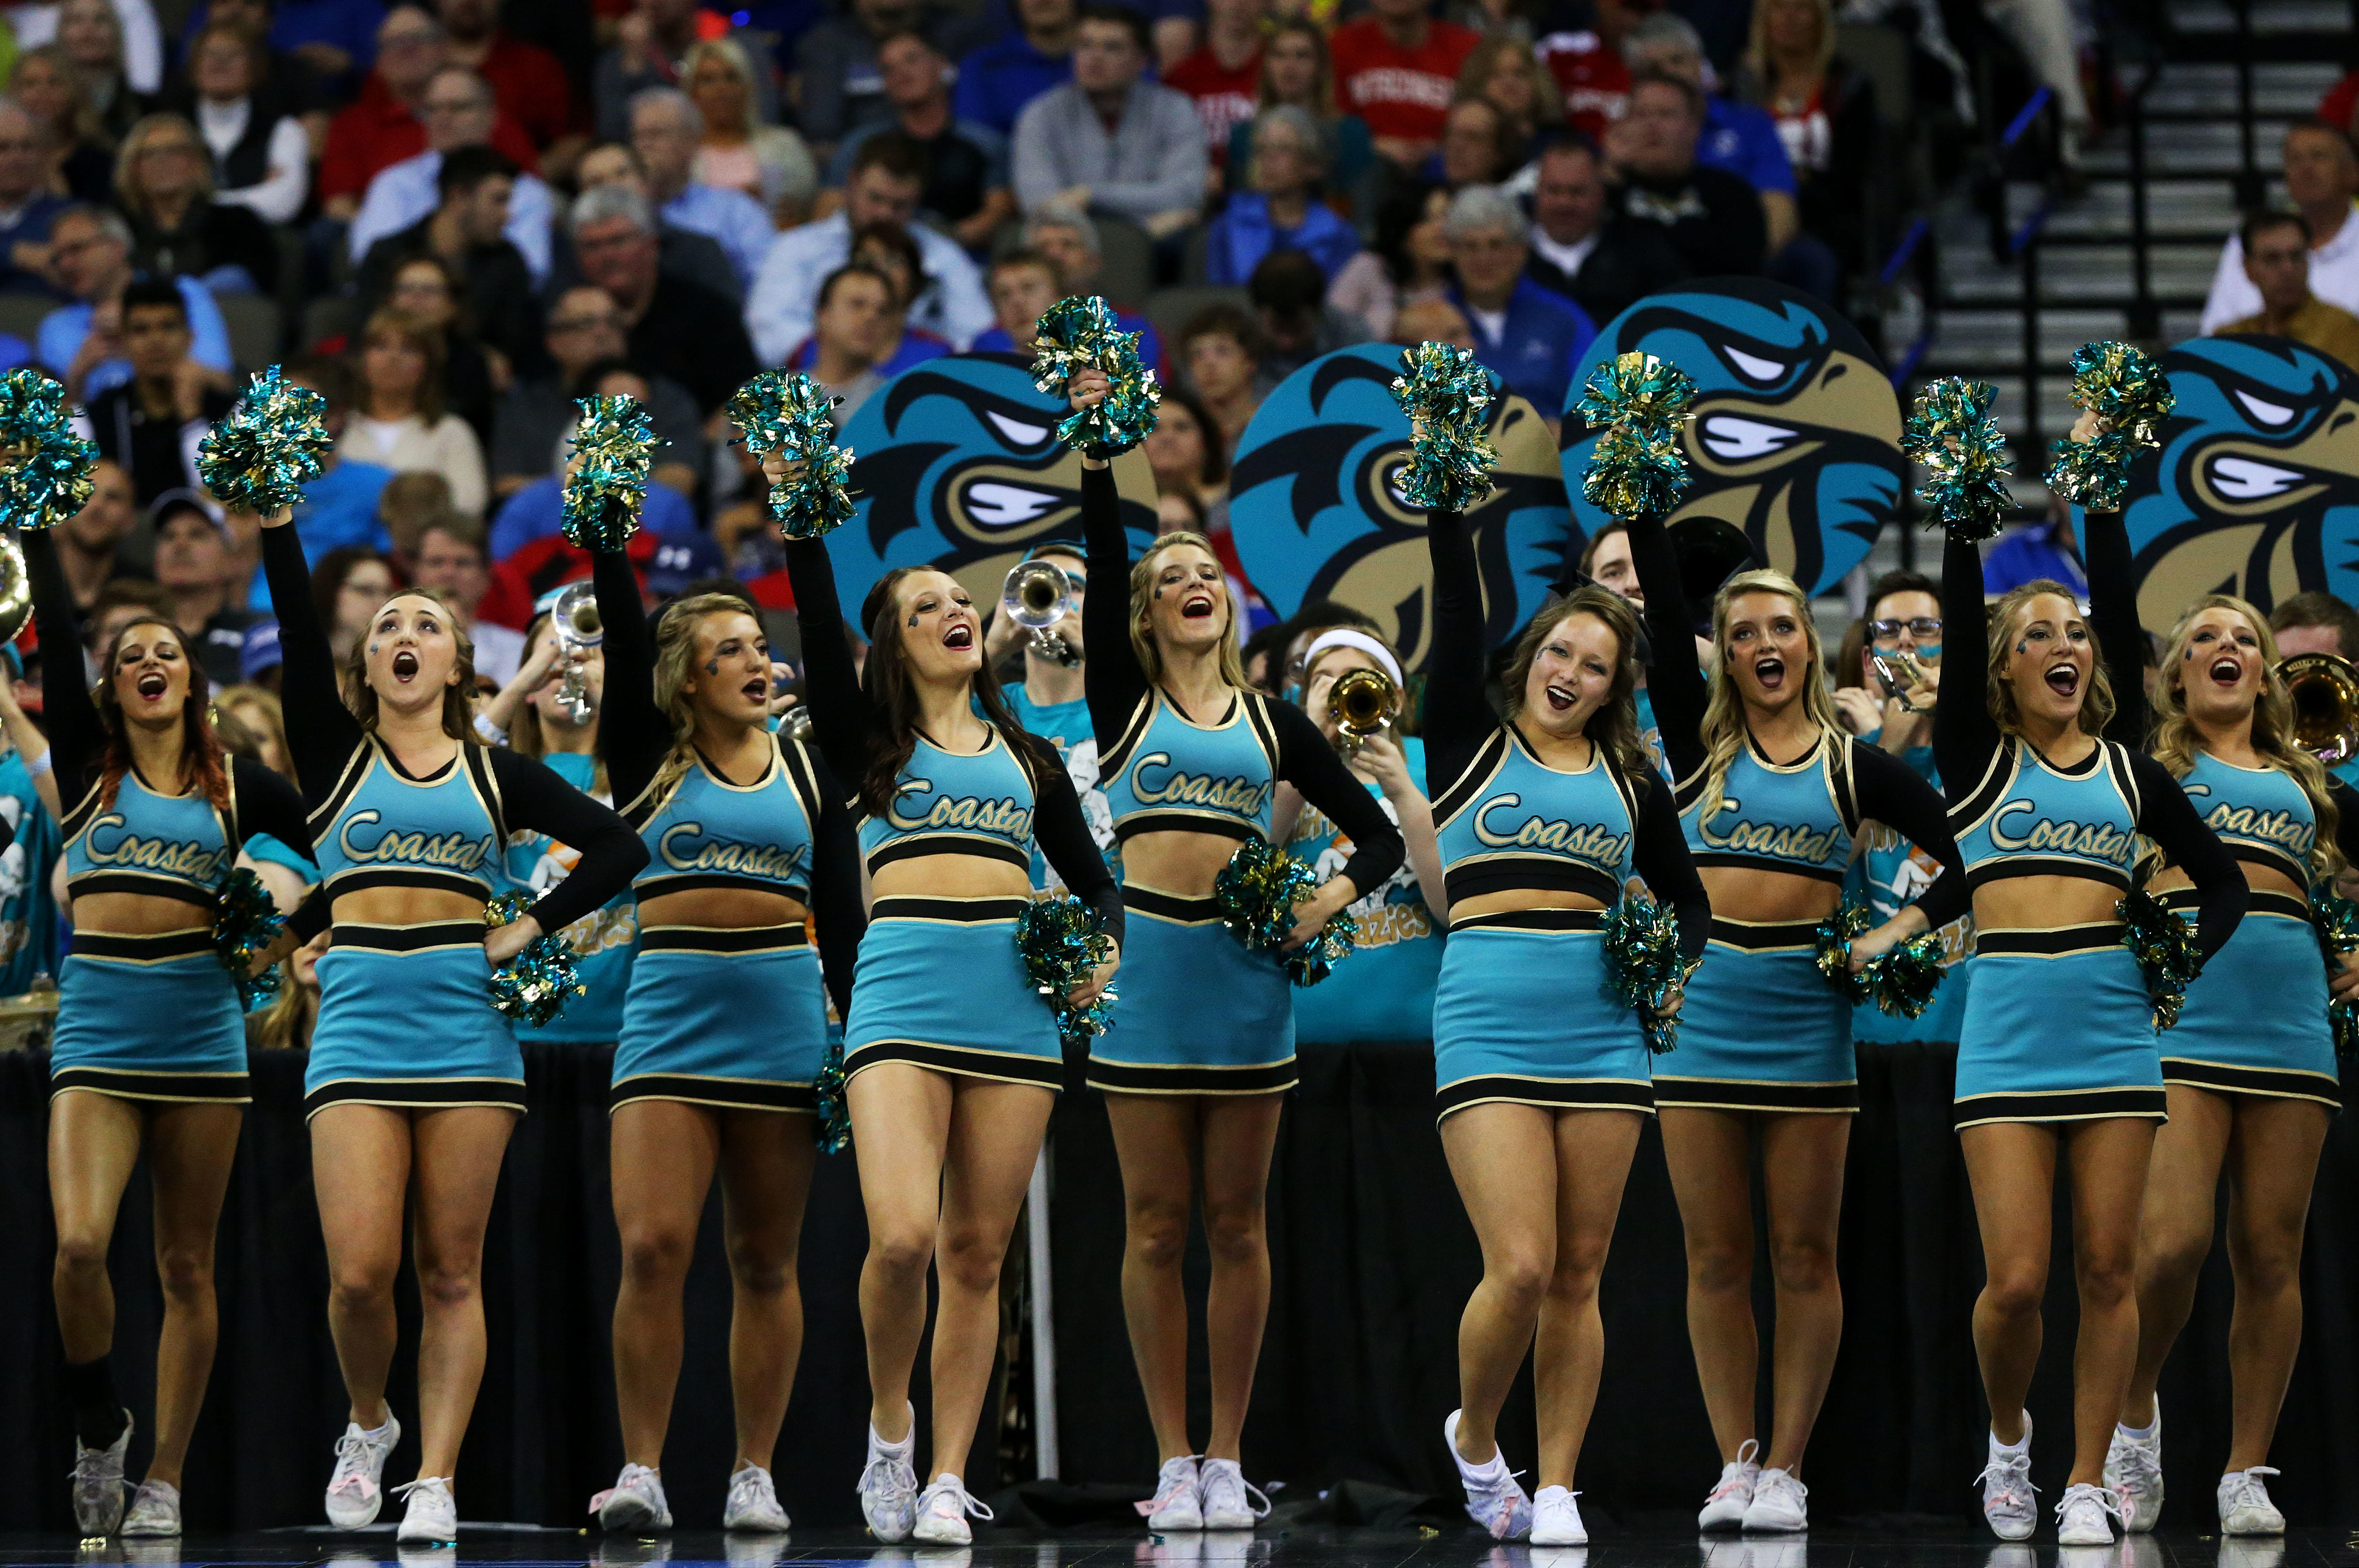 University Of Alabama Football Schedule 2017 >> Report: Details of alleged prostitution by Coastal Carolina's cheerleading squad emerge